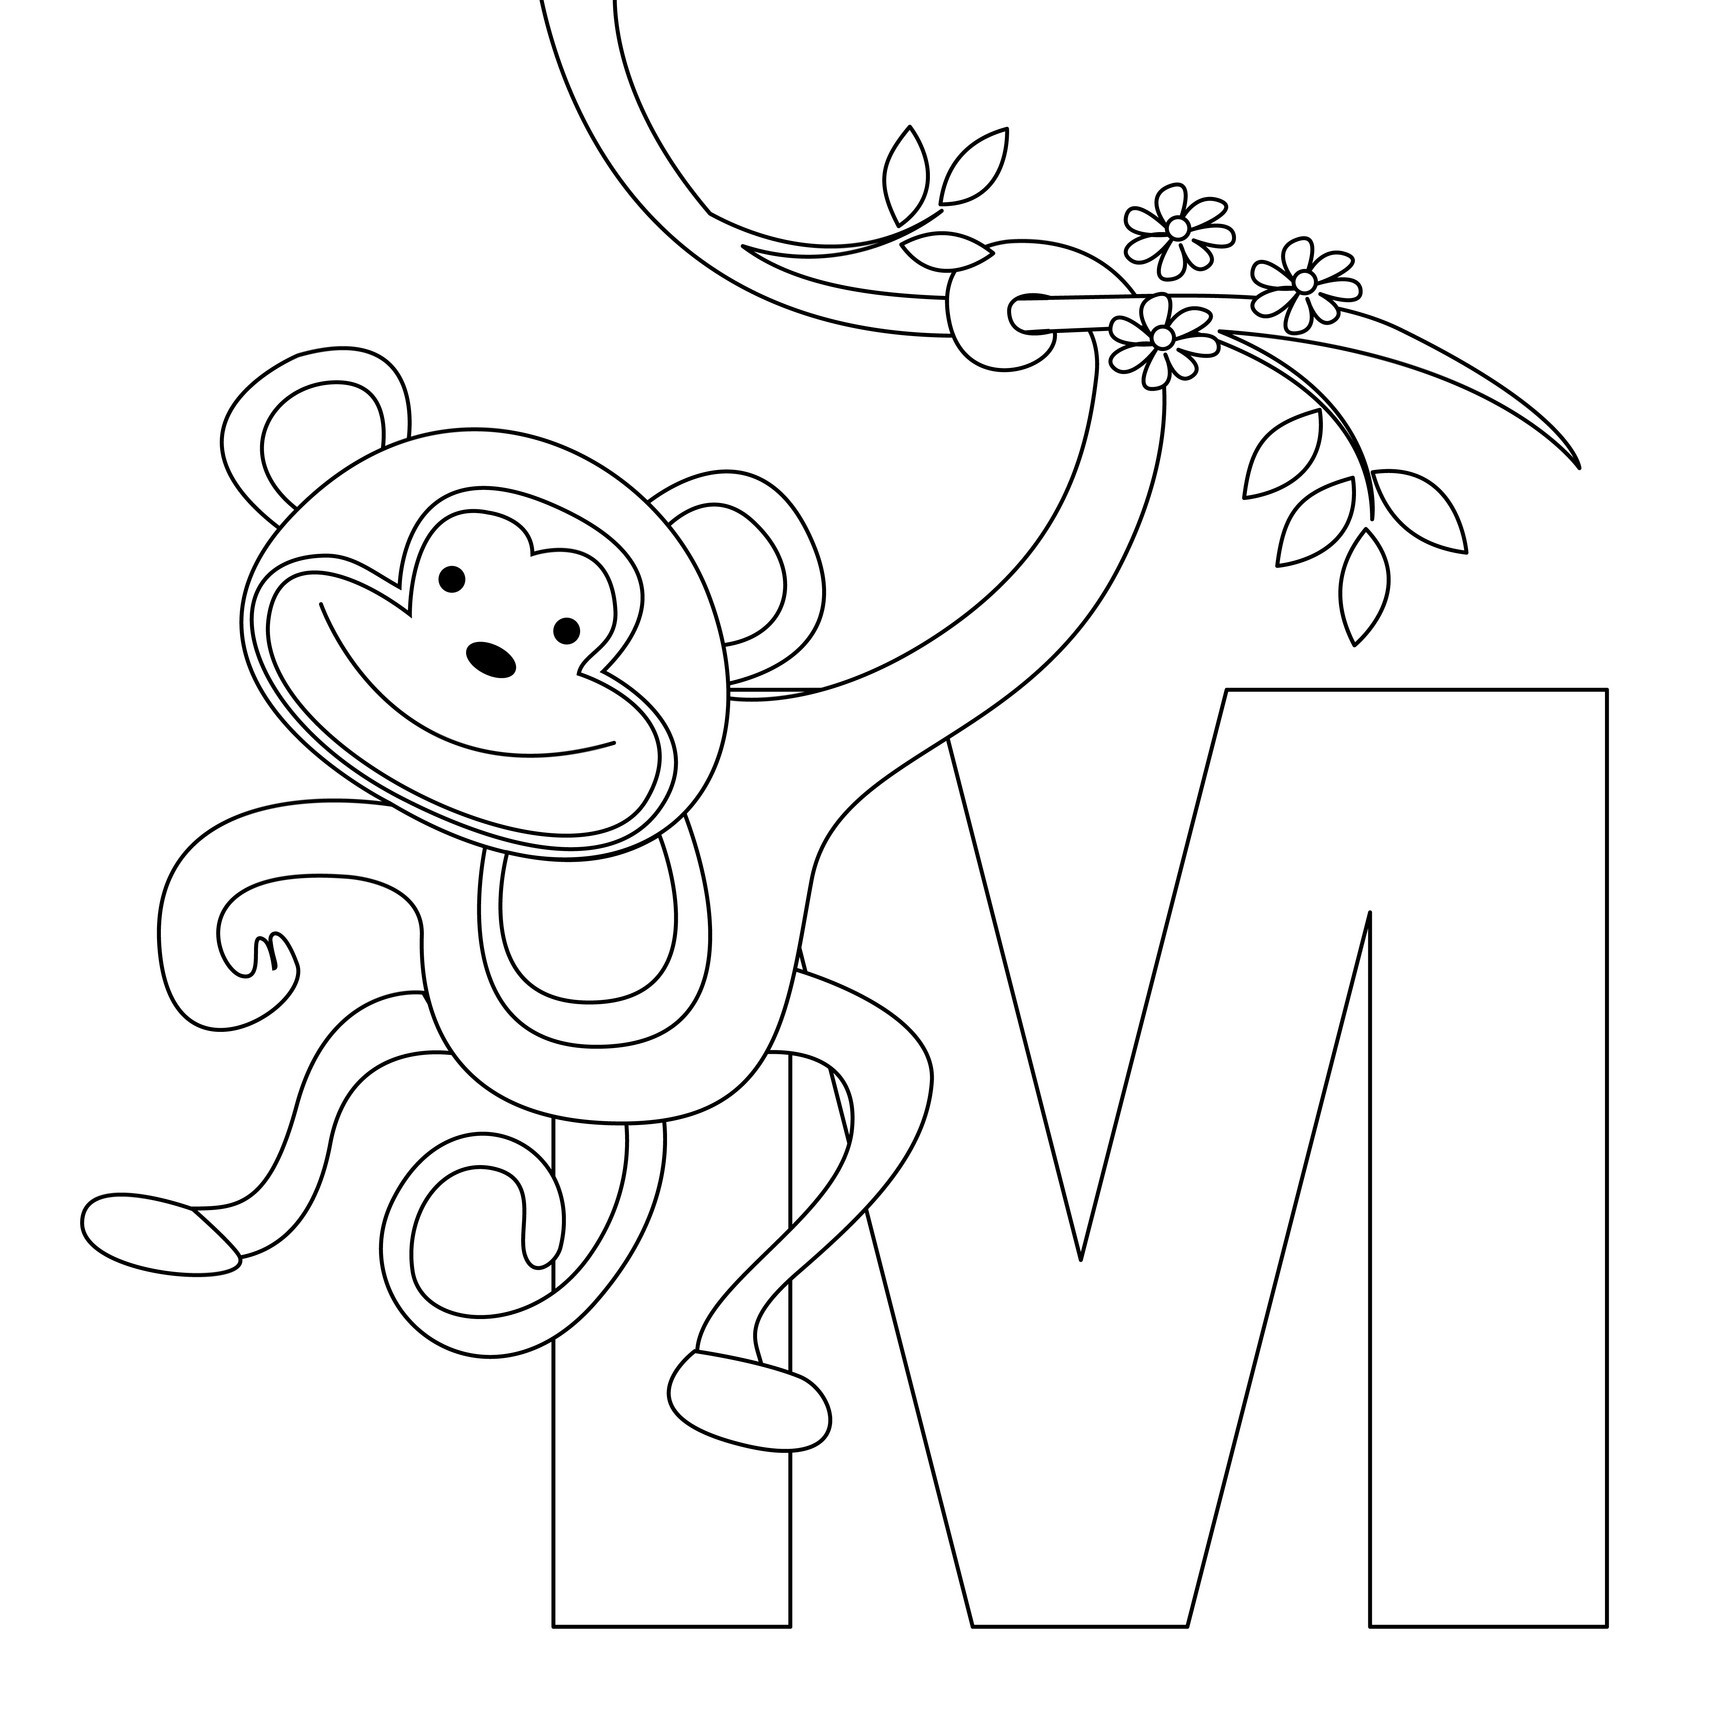 alphabet letters coloring pages n - photo#39